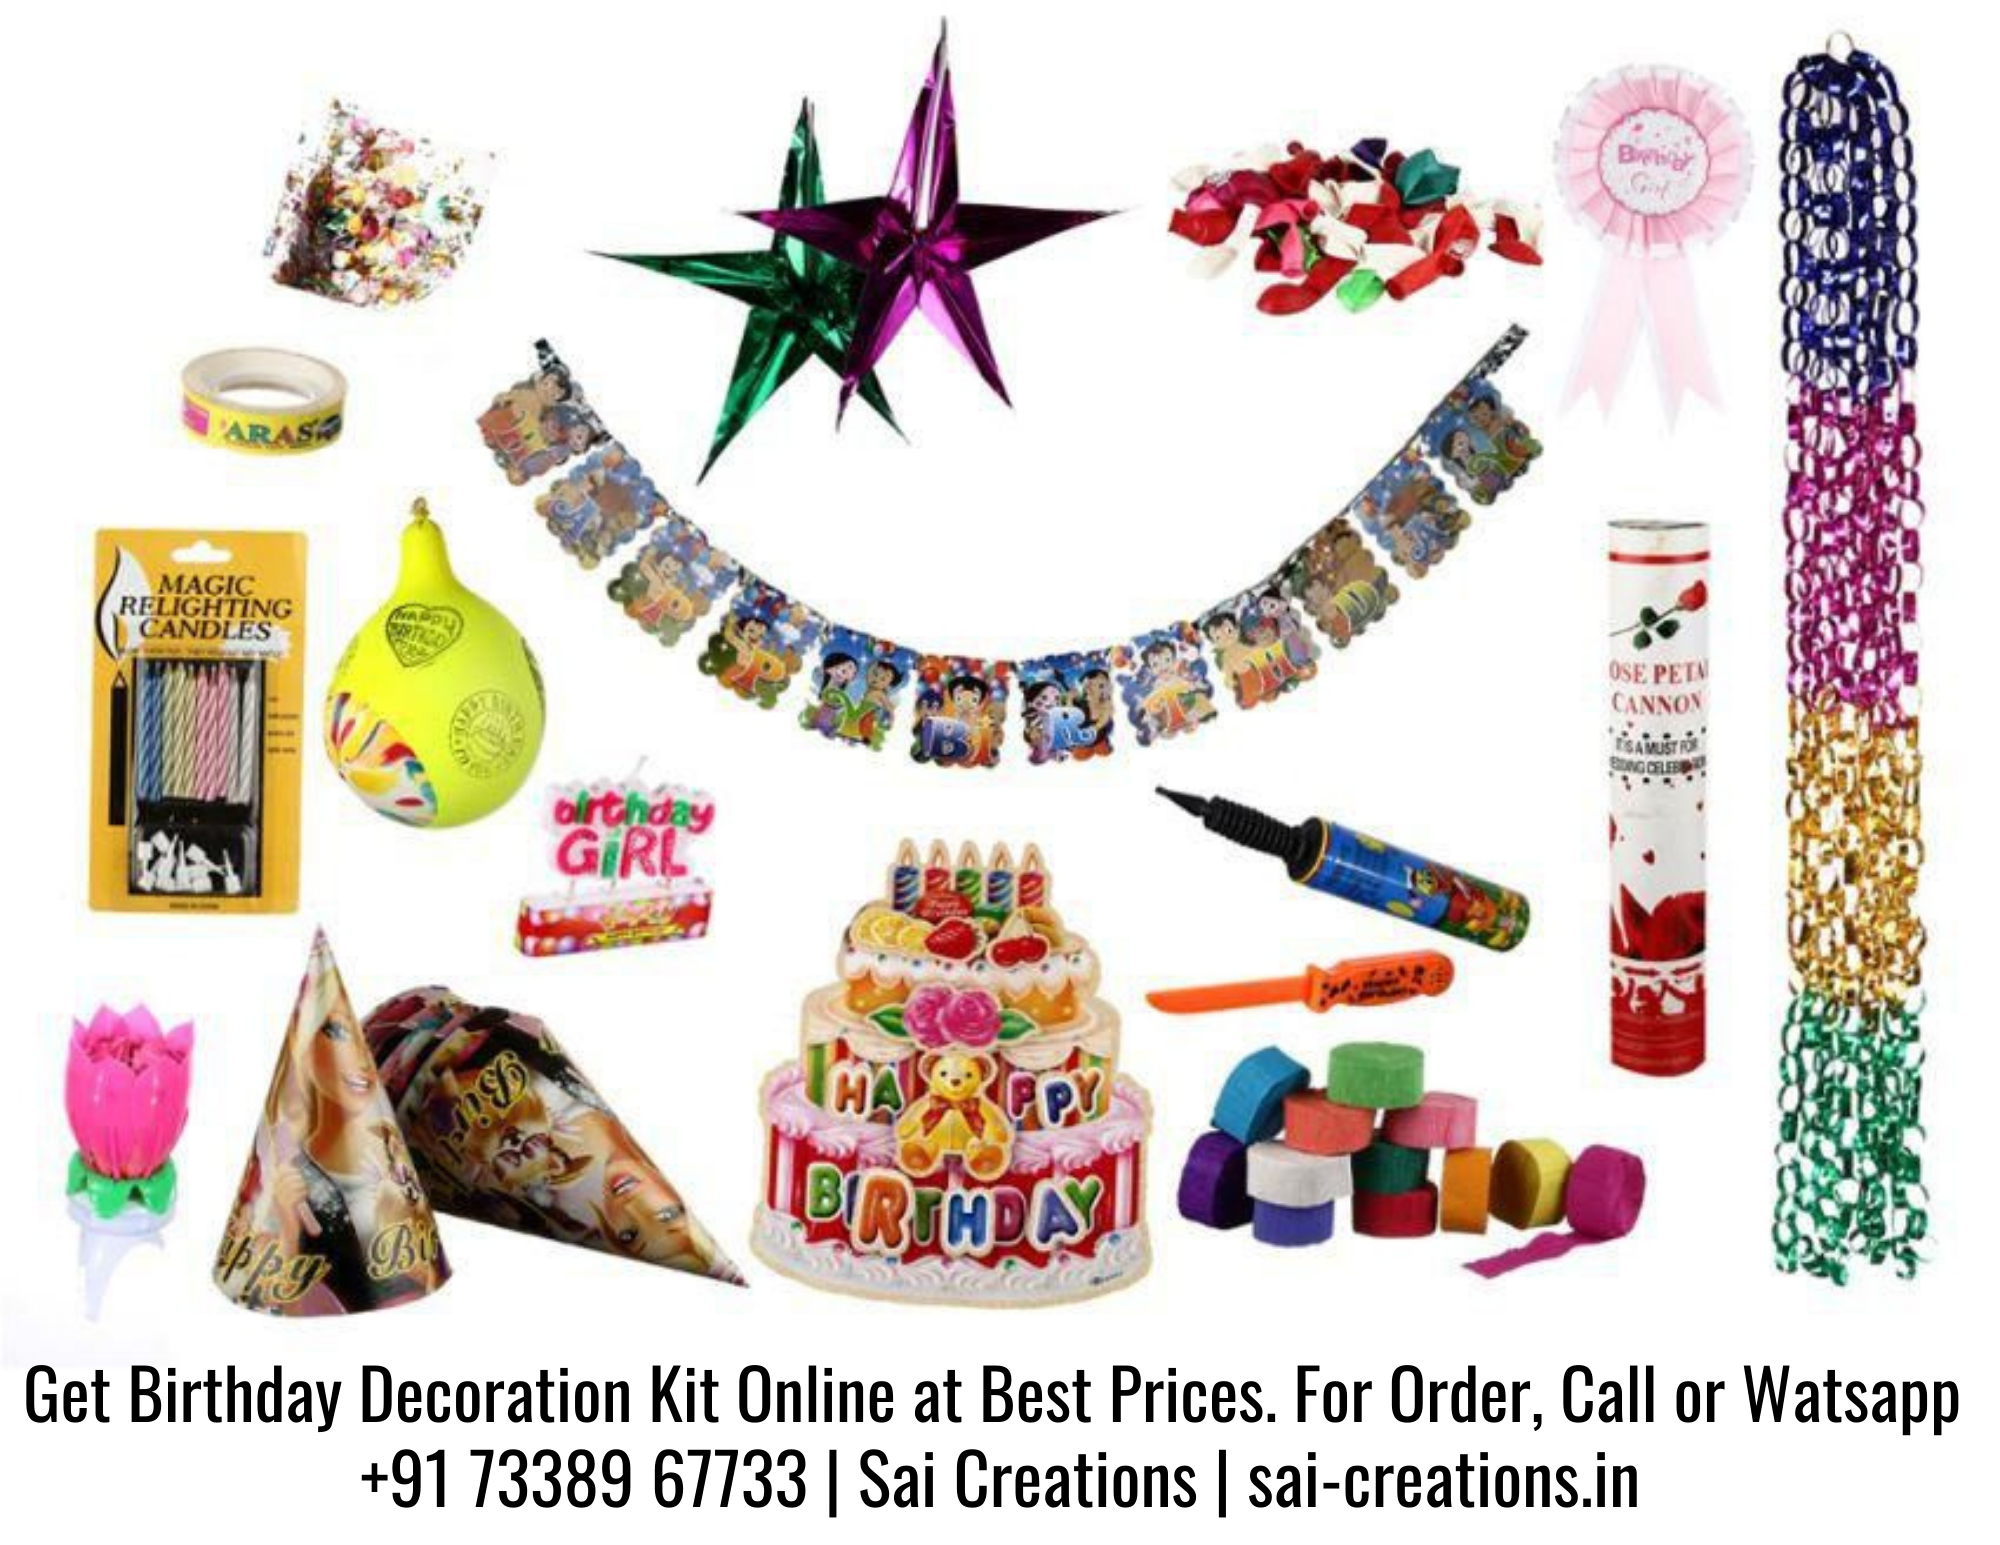 Birthday Decoration Kit at Best Prices